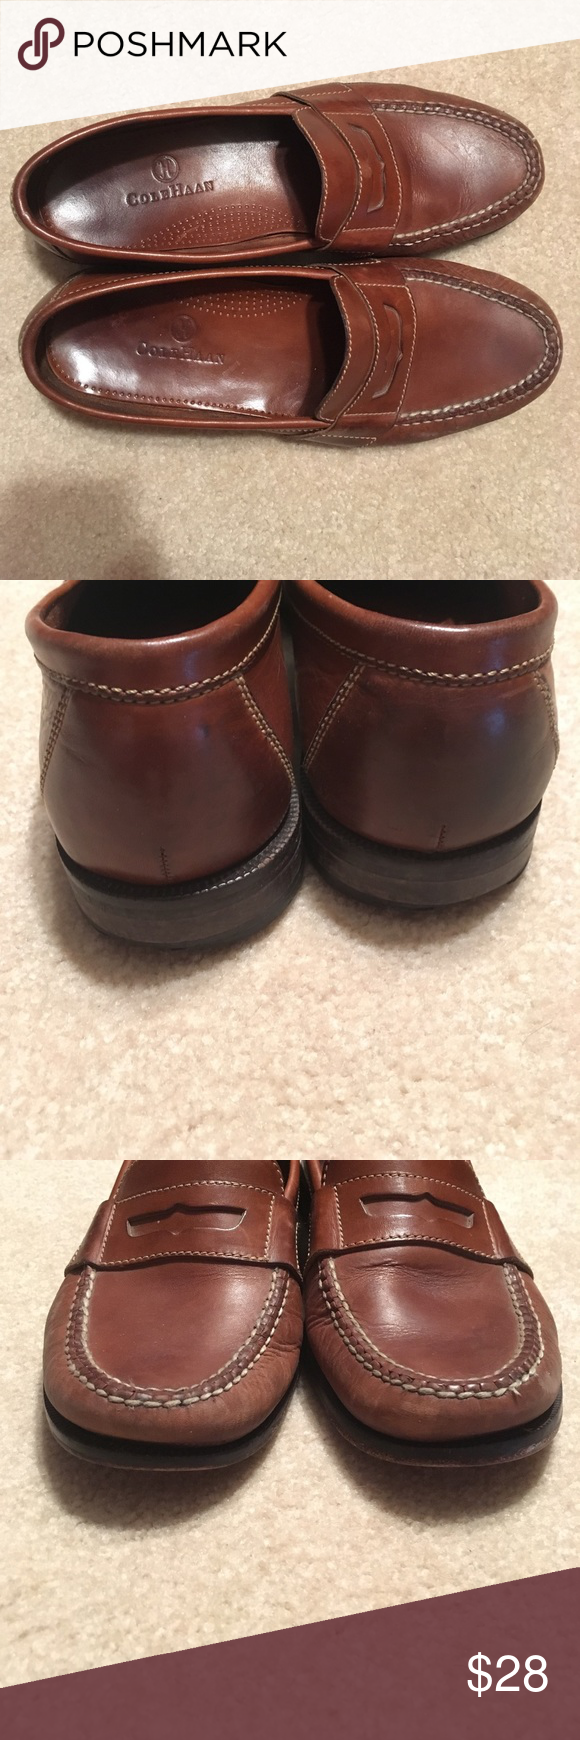 Cole Haan Men's Tan Leather Penny Loafer This is a pre-owned traditional penny loafer in good condition. Fully  leather upper and footbed. These have some wear on the heels and footbed. There is minor scuffing on toes. Super comfortable and timeless. Make an offer! Cole Haan Shoes Loafers & Slip-Ons